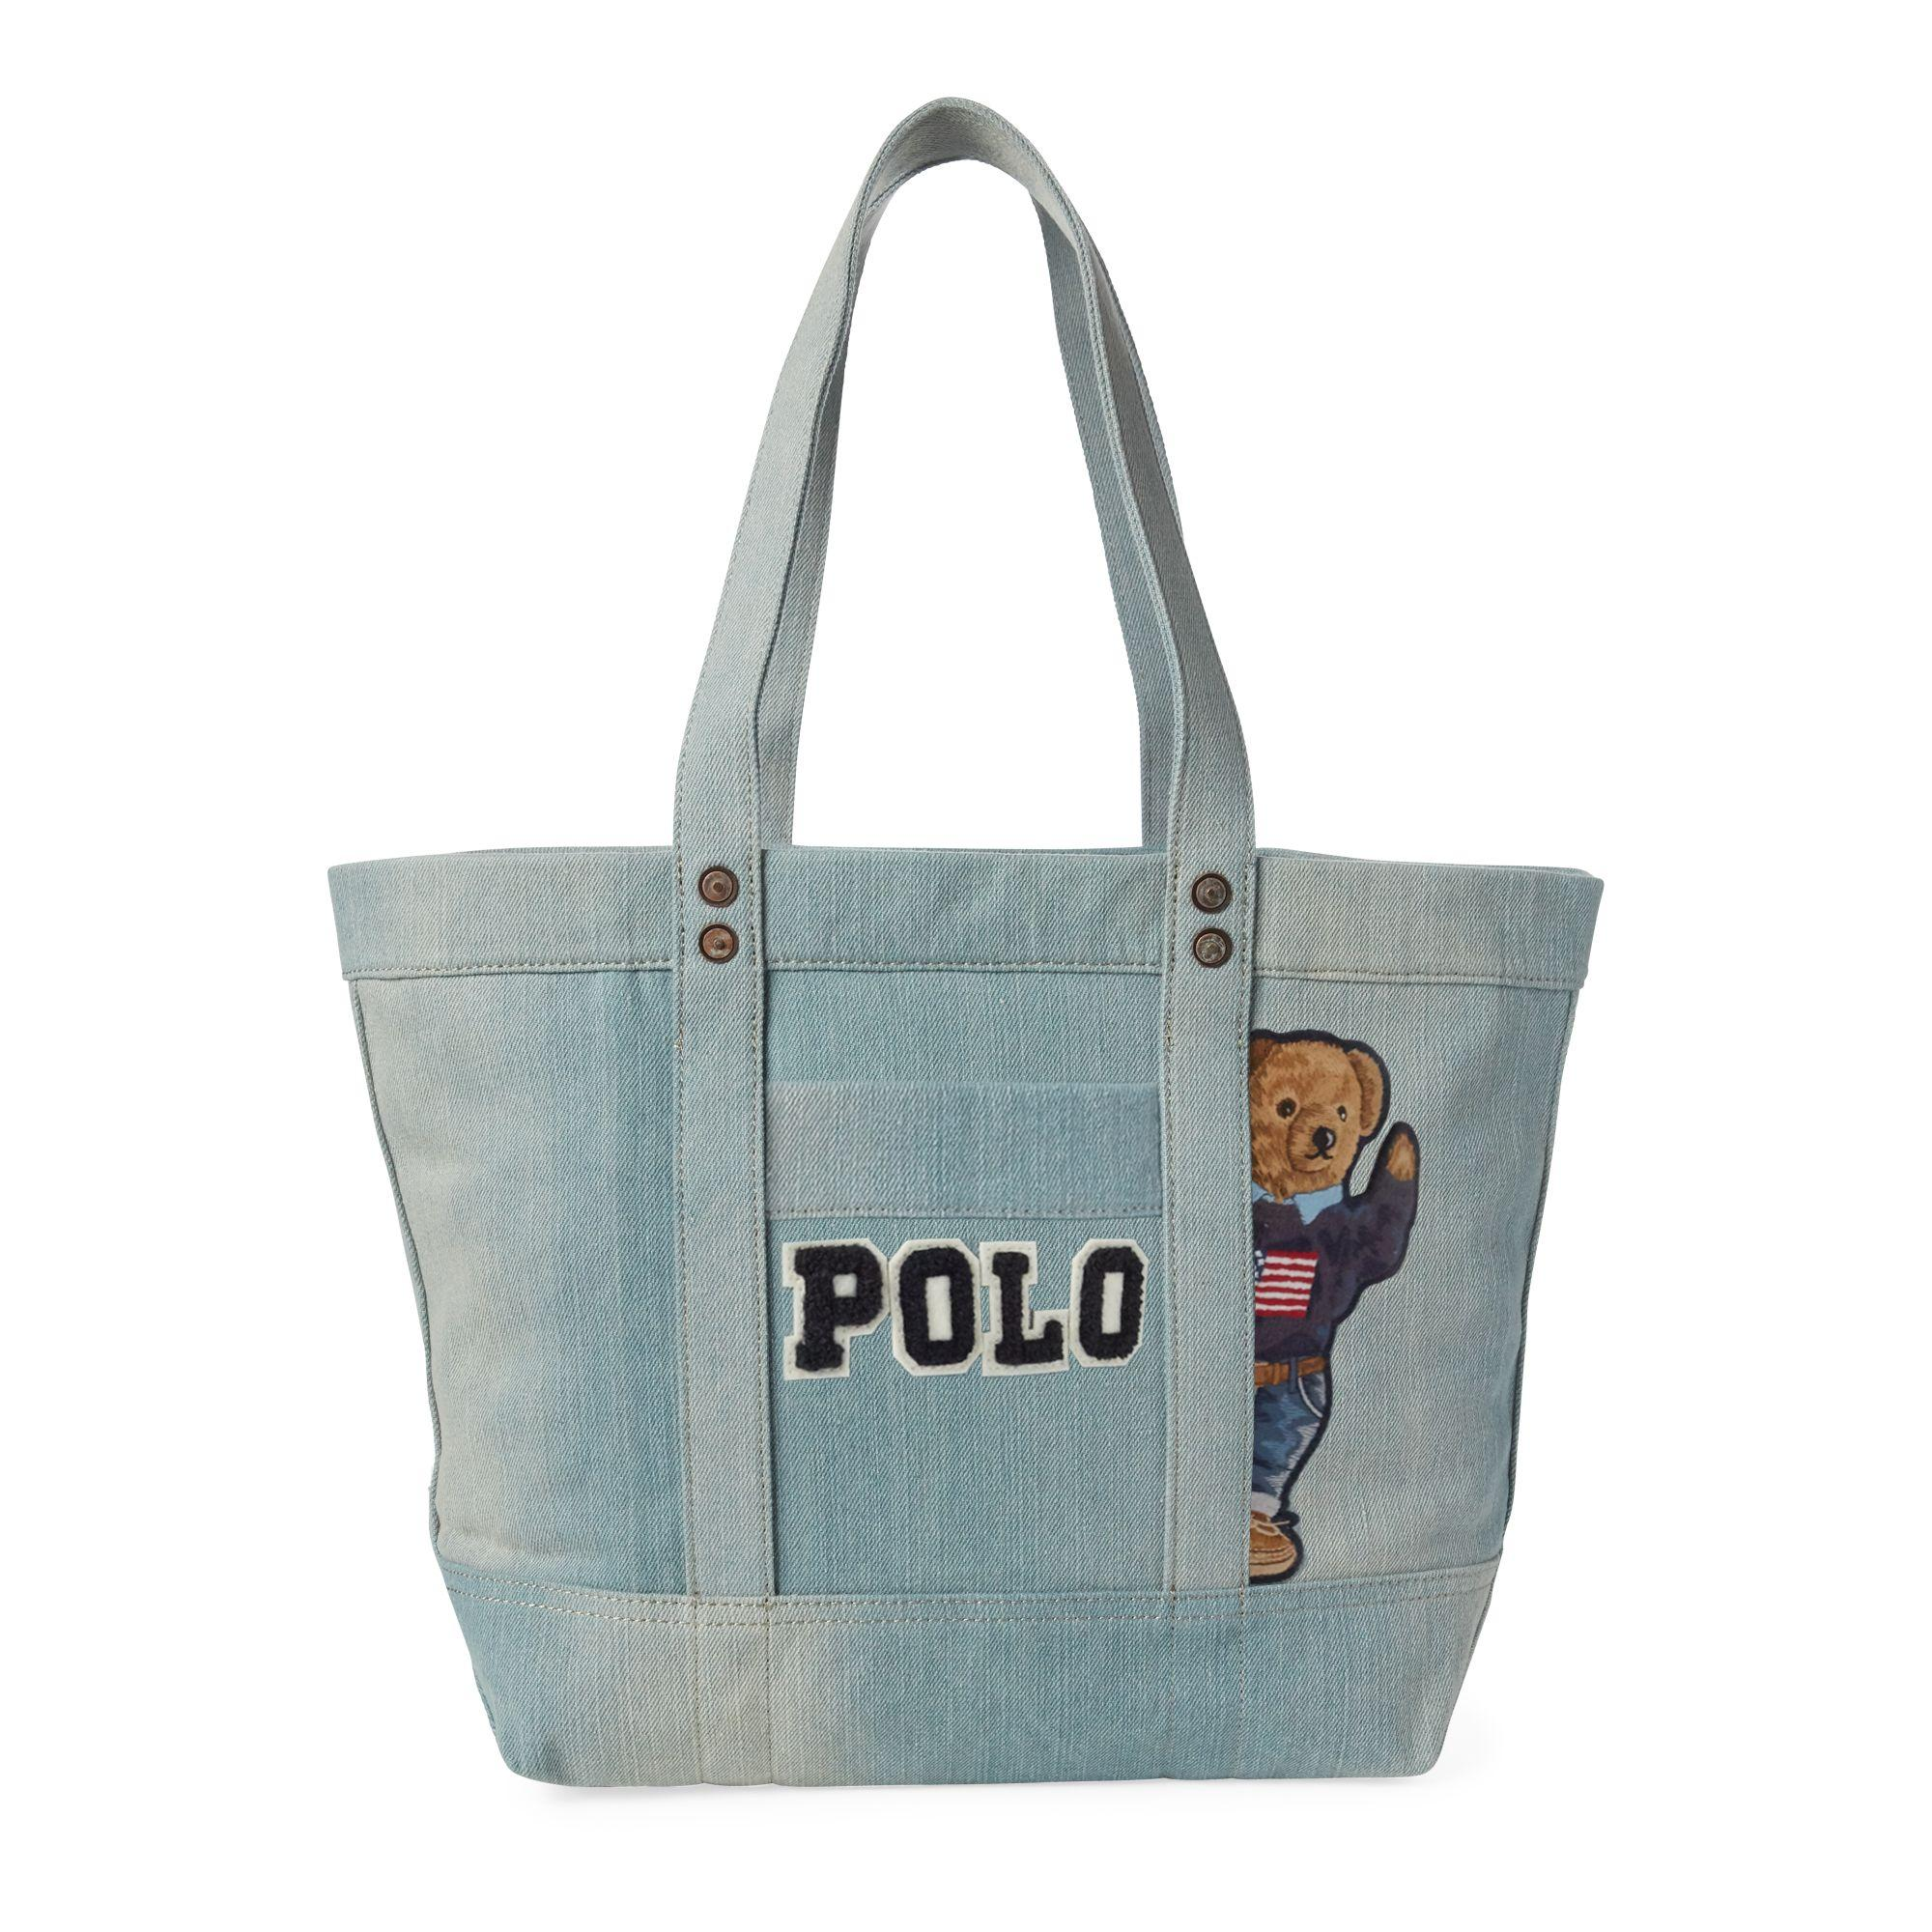 051bf537f0 Polo Ralph Lauren Canvas Polo Bear Tote Bag in Blue - Lyst